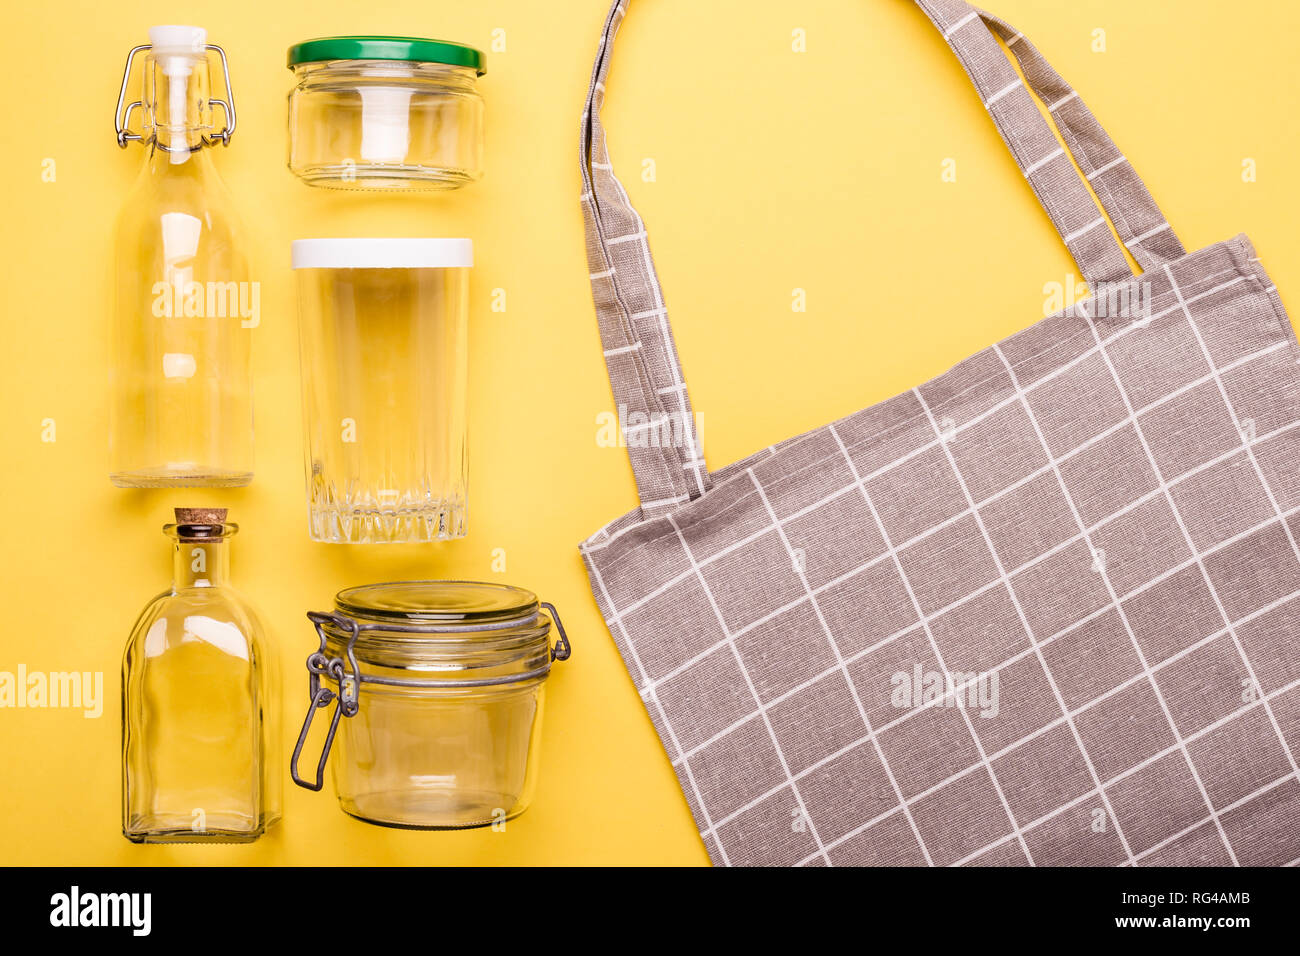 Set of jars and textile bag for zero waste shopping. - Stock Image